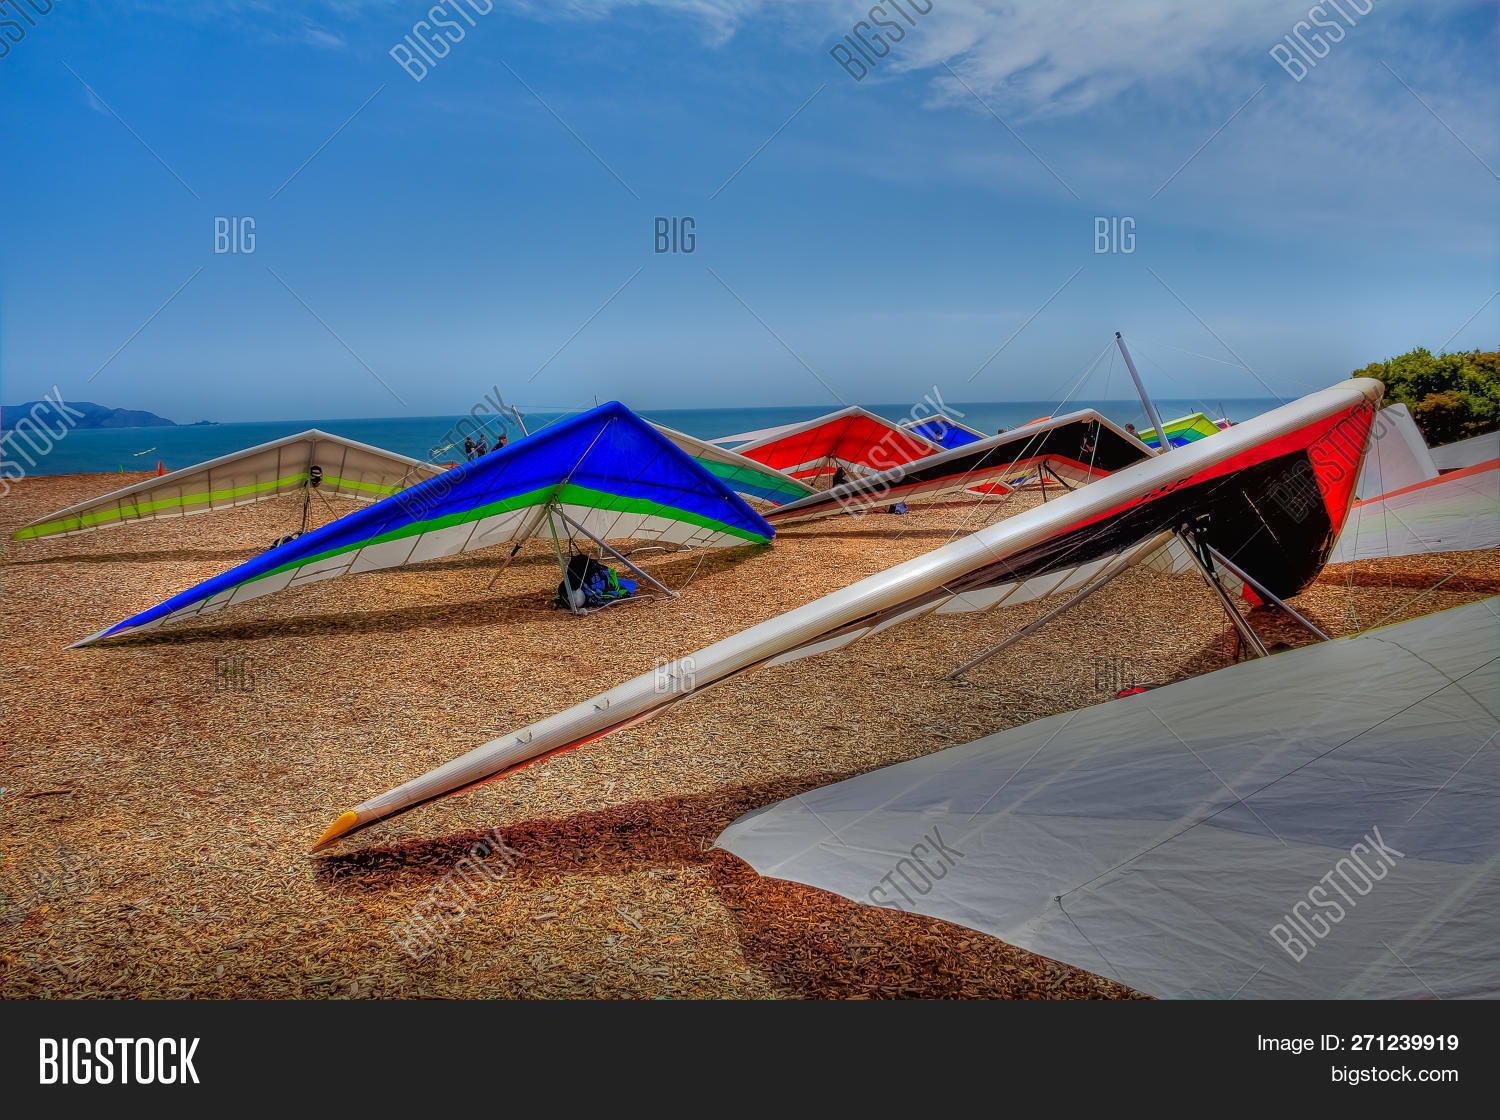 Colorful Hang Gliding Image & Photo (Free Trial) | Bigstock